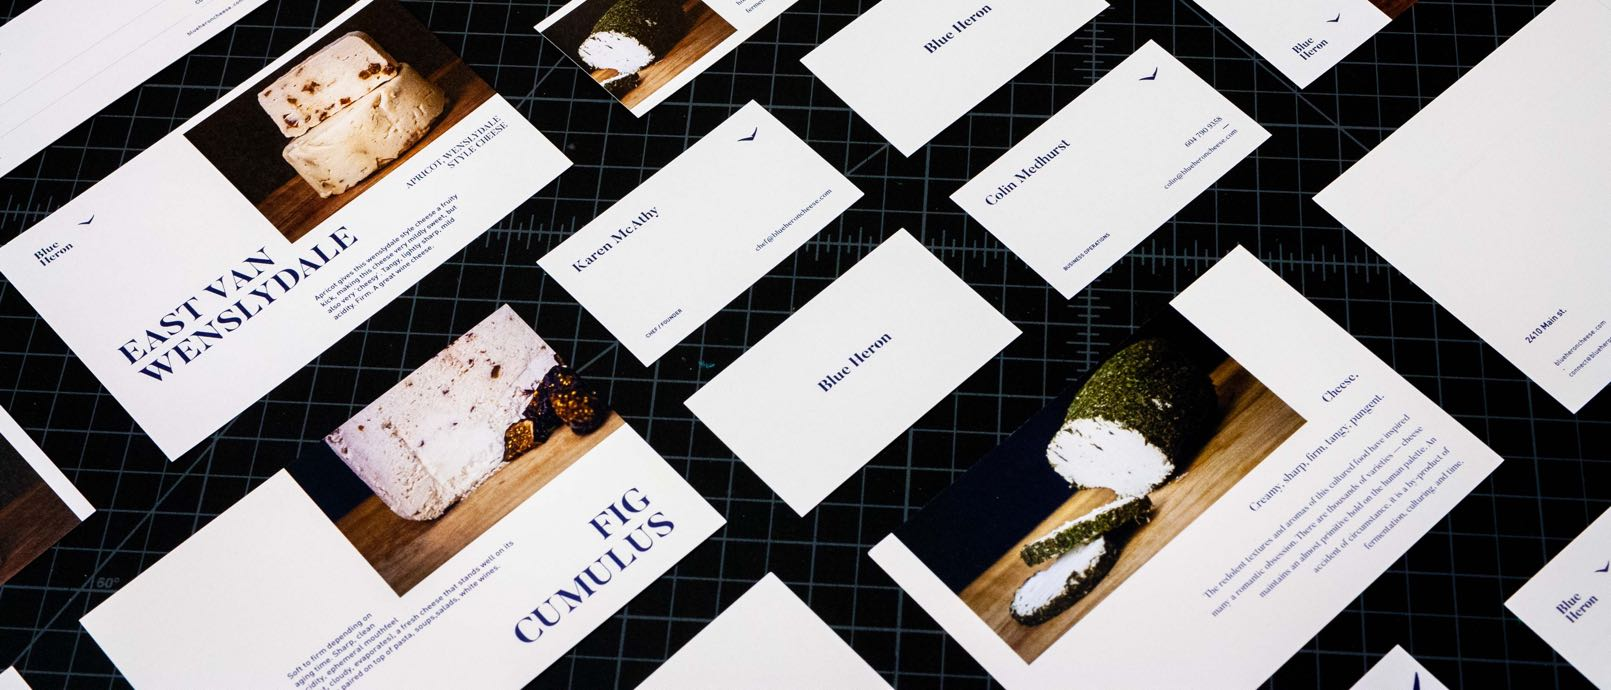 Series of cheese focused postcards and business cards for Blue Heron Cheese, each featuring a macro photo of the cheese and Karen McAthy's product descriptions — by Dima Yagnyuk.